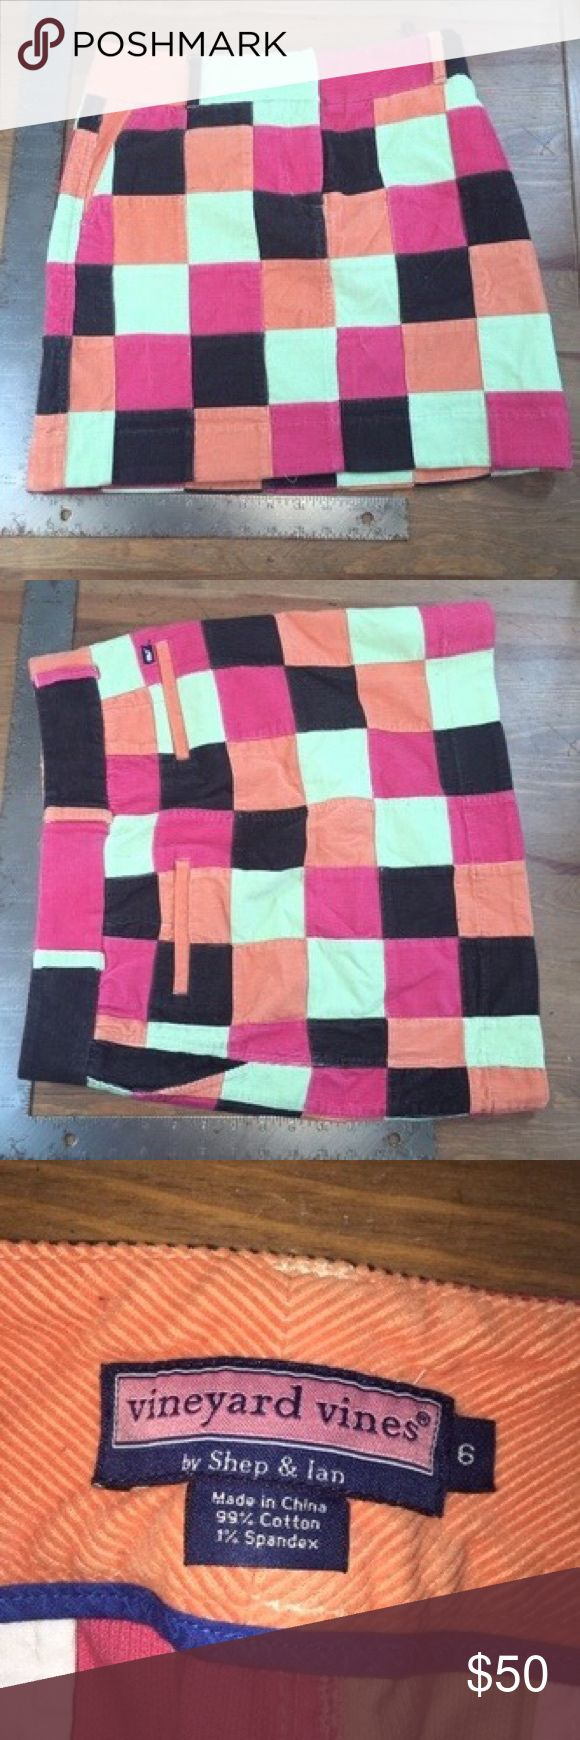 Vineyard Vines Skirt Orange This skirt is in excellent condition. Guaranteed authentic item and a must have item! We are unable to model items or take sales to PP. Willing to negotiate using the offer button. No trades. Happy Poshing! Vineyard Vines Skirts